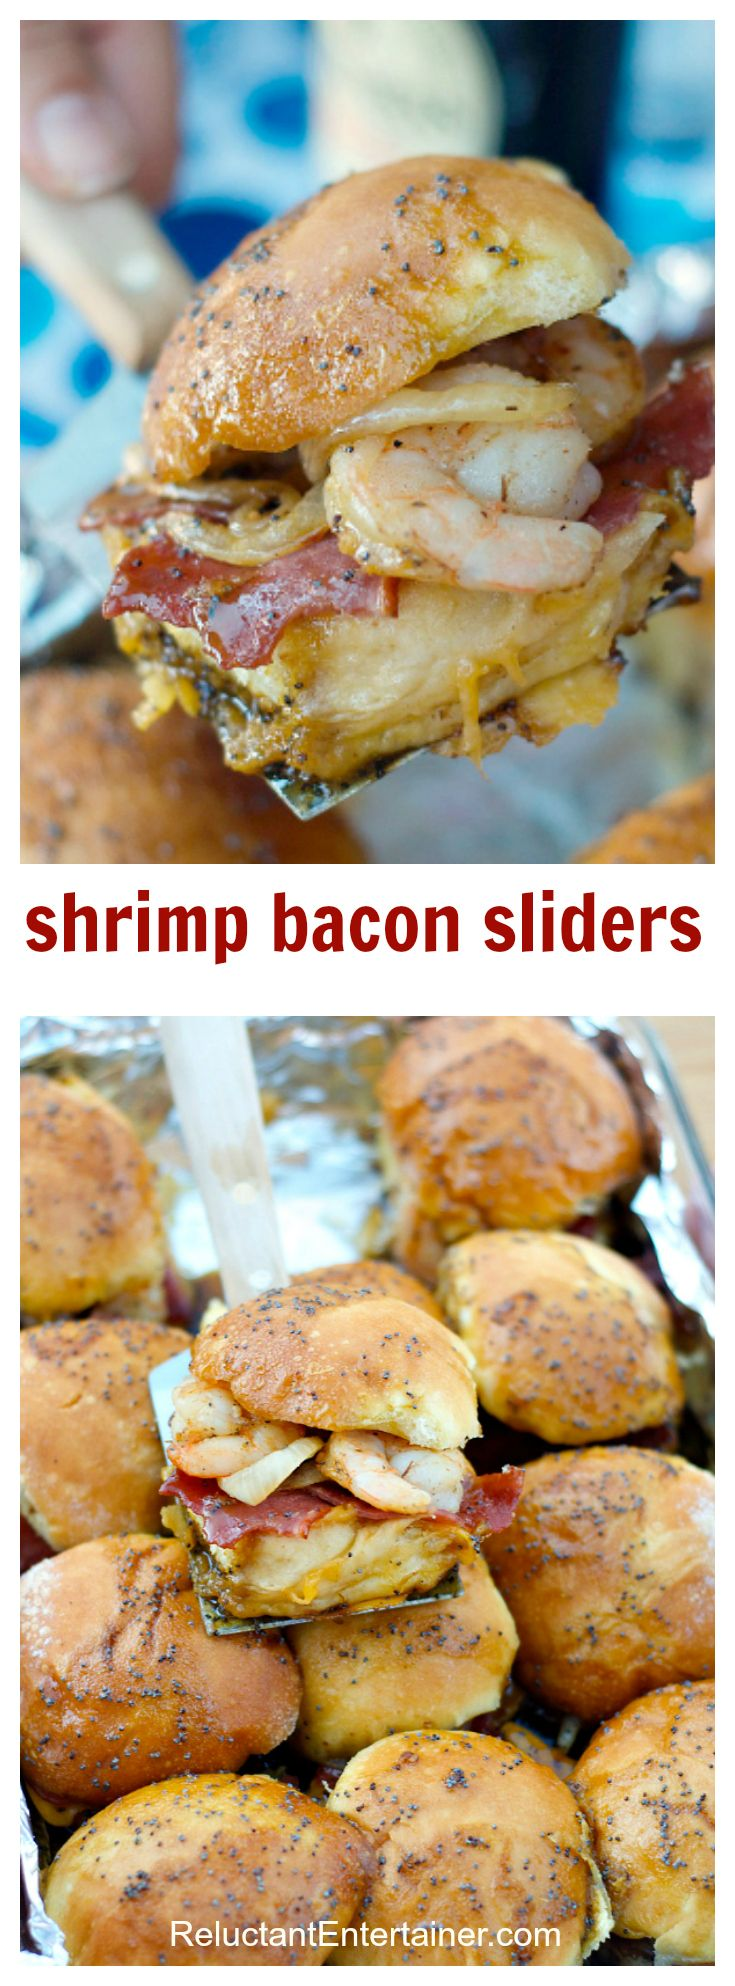 Shrimp Bacon Sliders for tailgating or holiday parties! ReluctantEntertainer.com